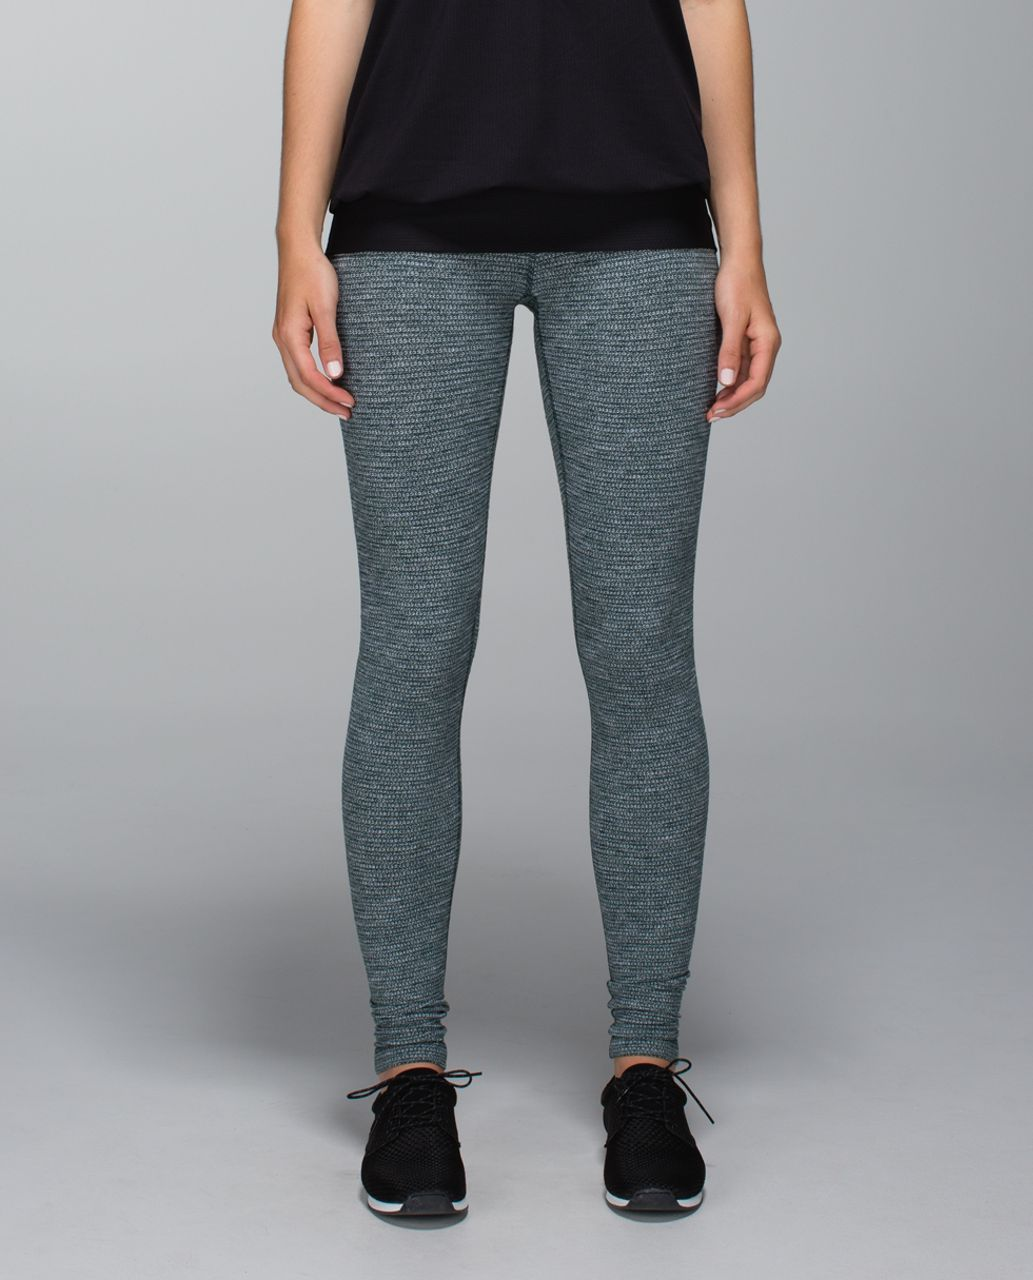 Lululemon Wunder Under Pant (Roll Down) - Coco Pique Fuel Green